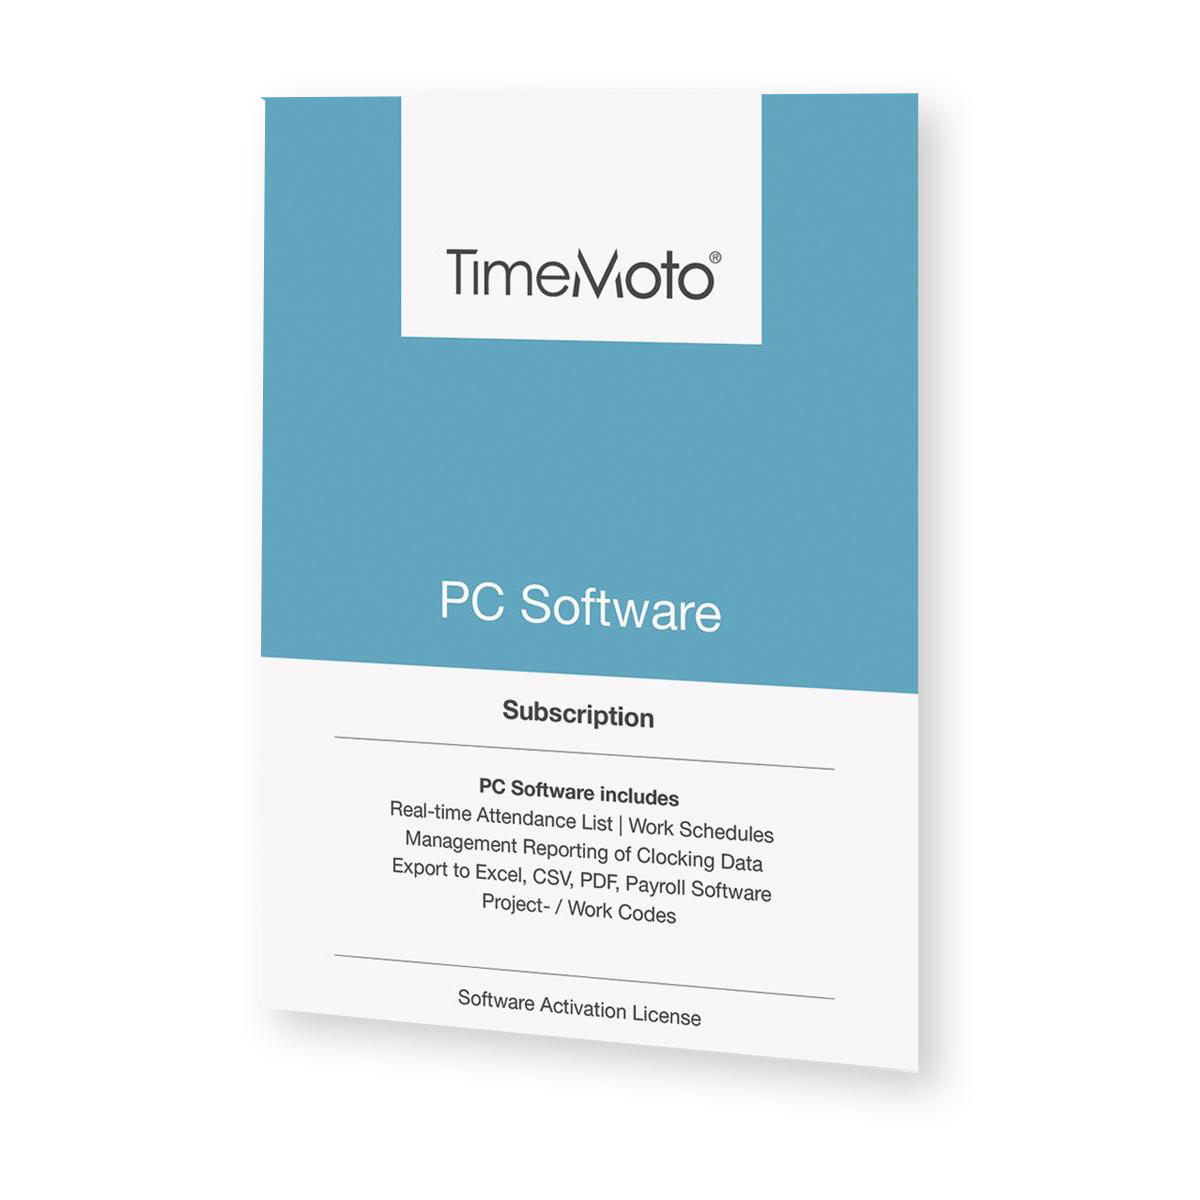 Attendance Machines TimeMoto by Safescan TM PC Software for Time & Attendance System Unlimited Users Ref 139-0601